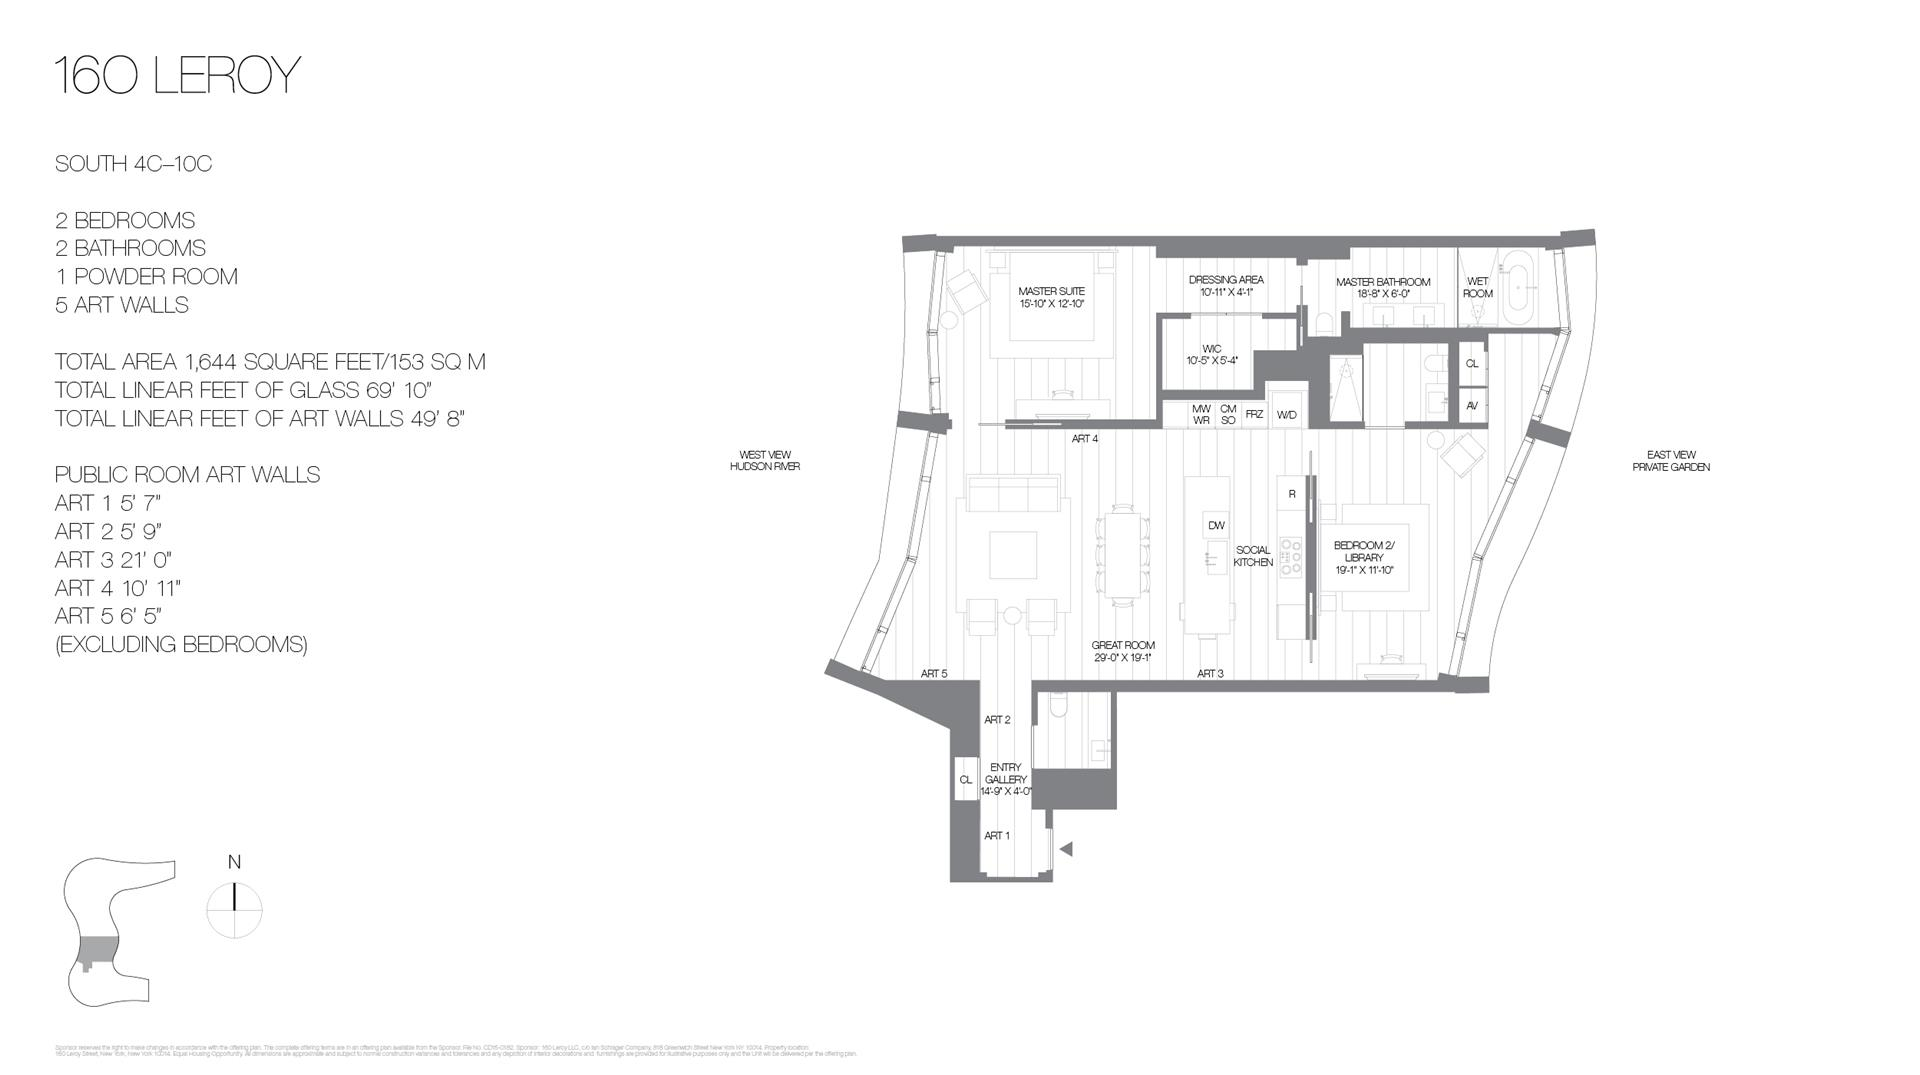 Floor plan of 160 Leroy St, SOUTH8C - West Village - Meatpacking District, New York